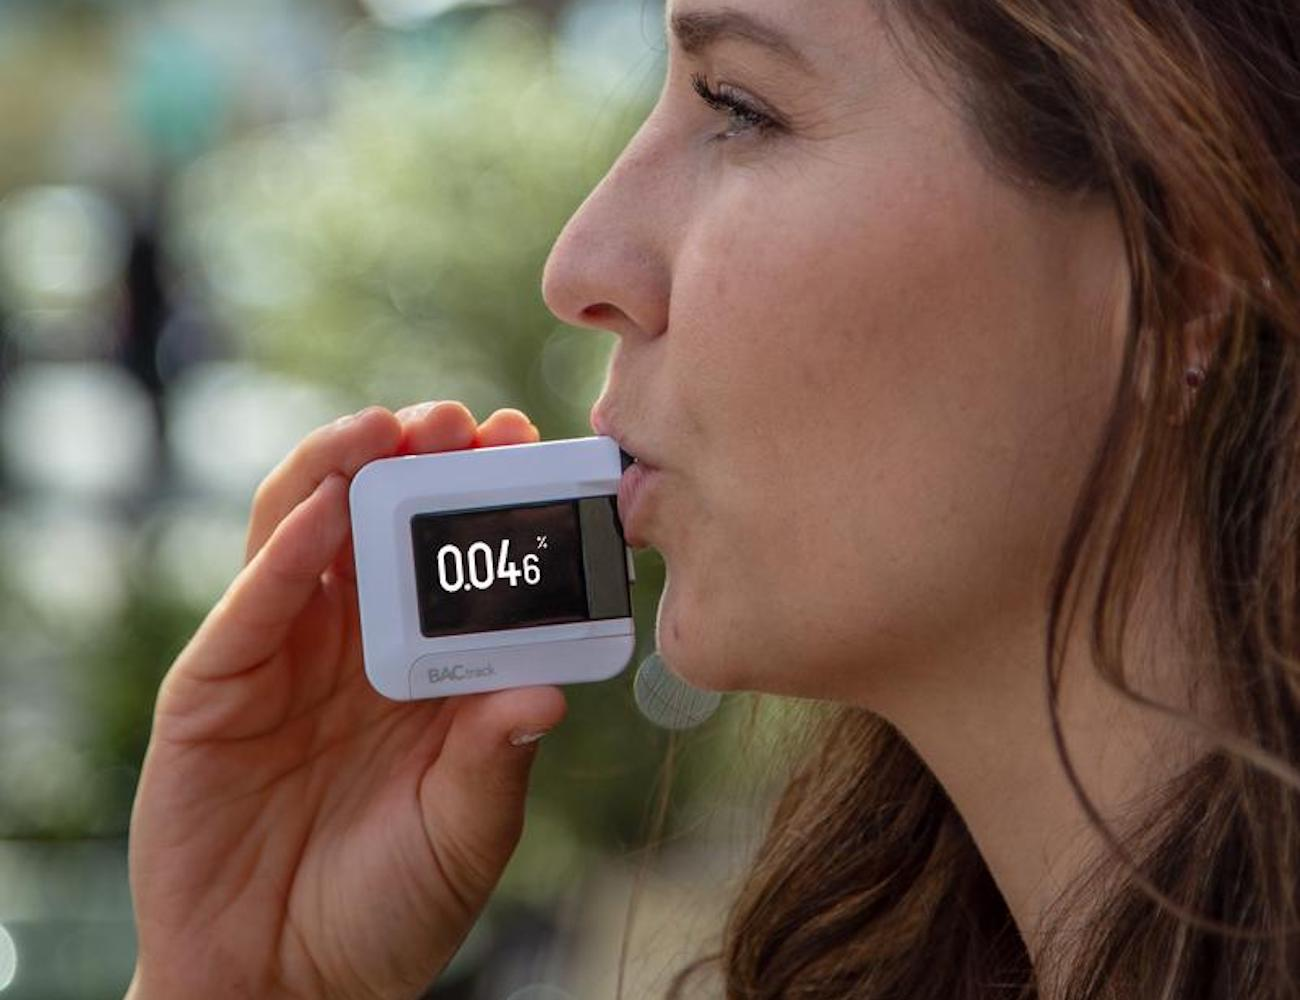 BACtrack C8 Personal Professional-Grade Breathalyzer offers accurate BAC detection